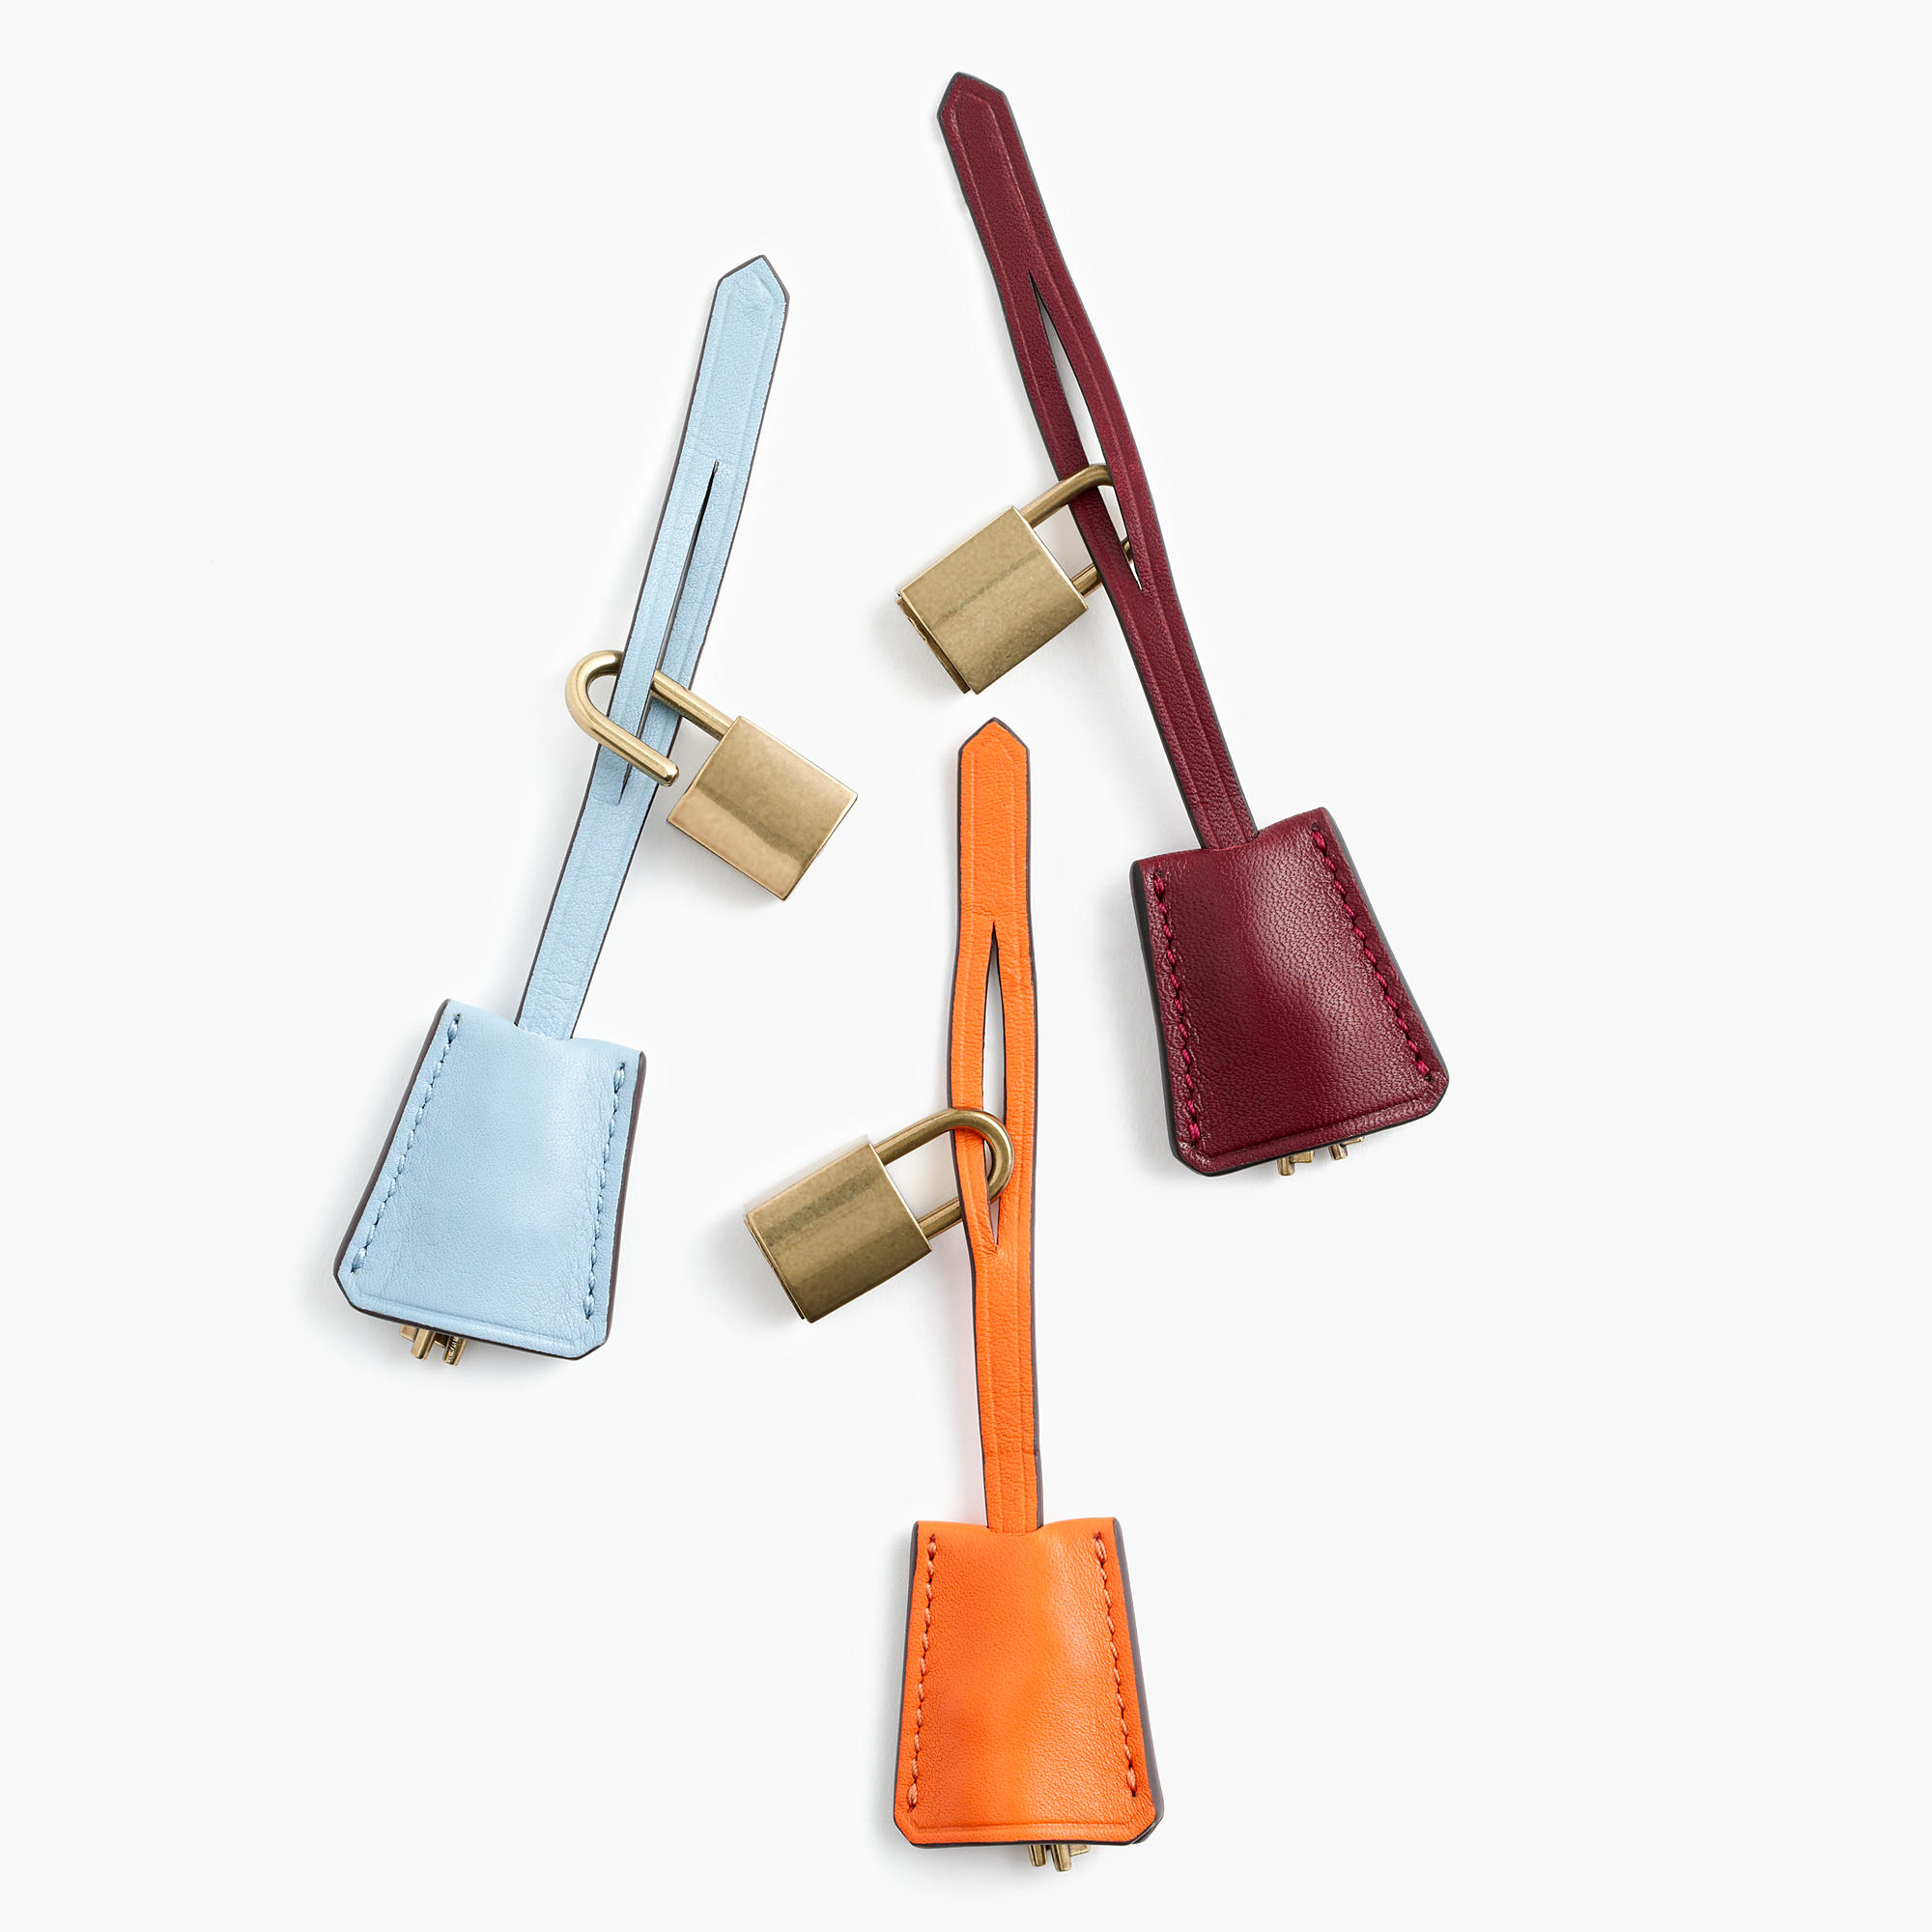 J.Crew Customizable Key Fobs in Italian Leather